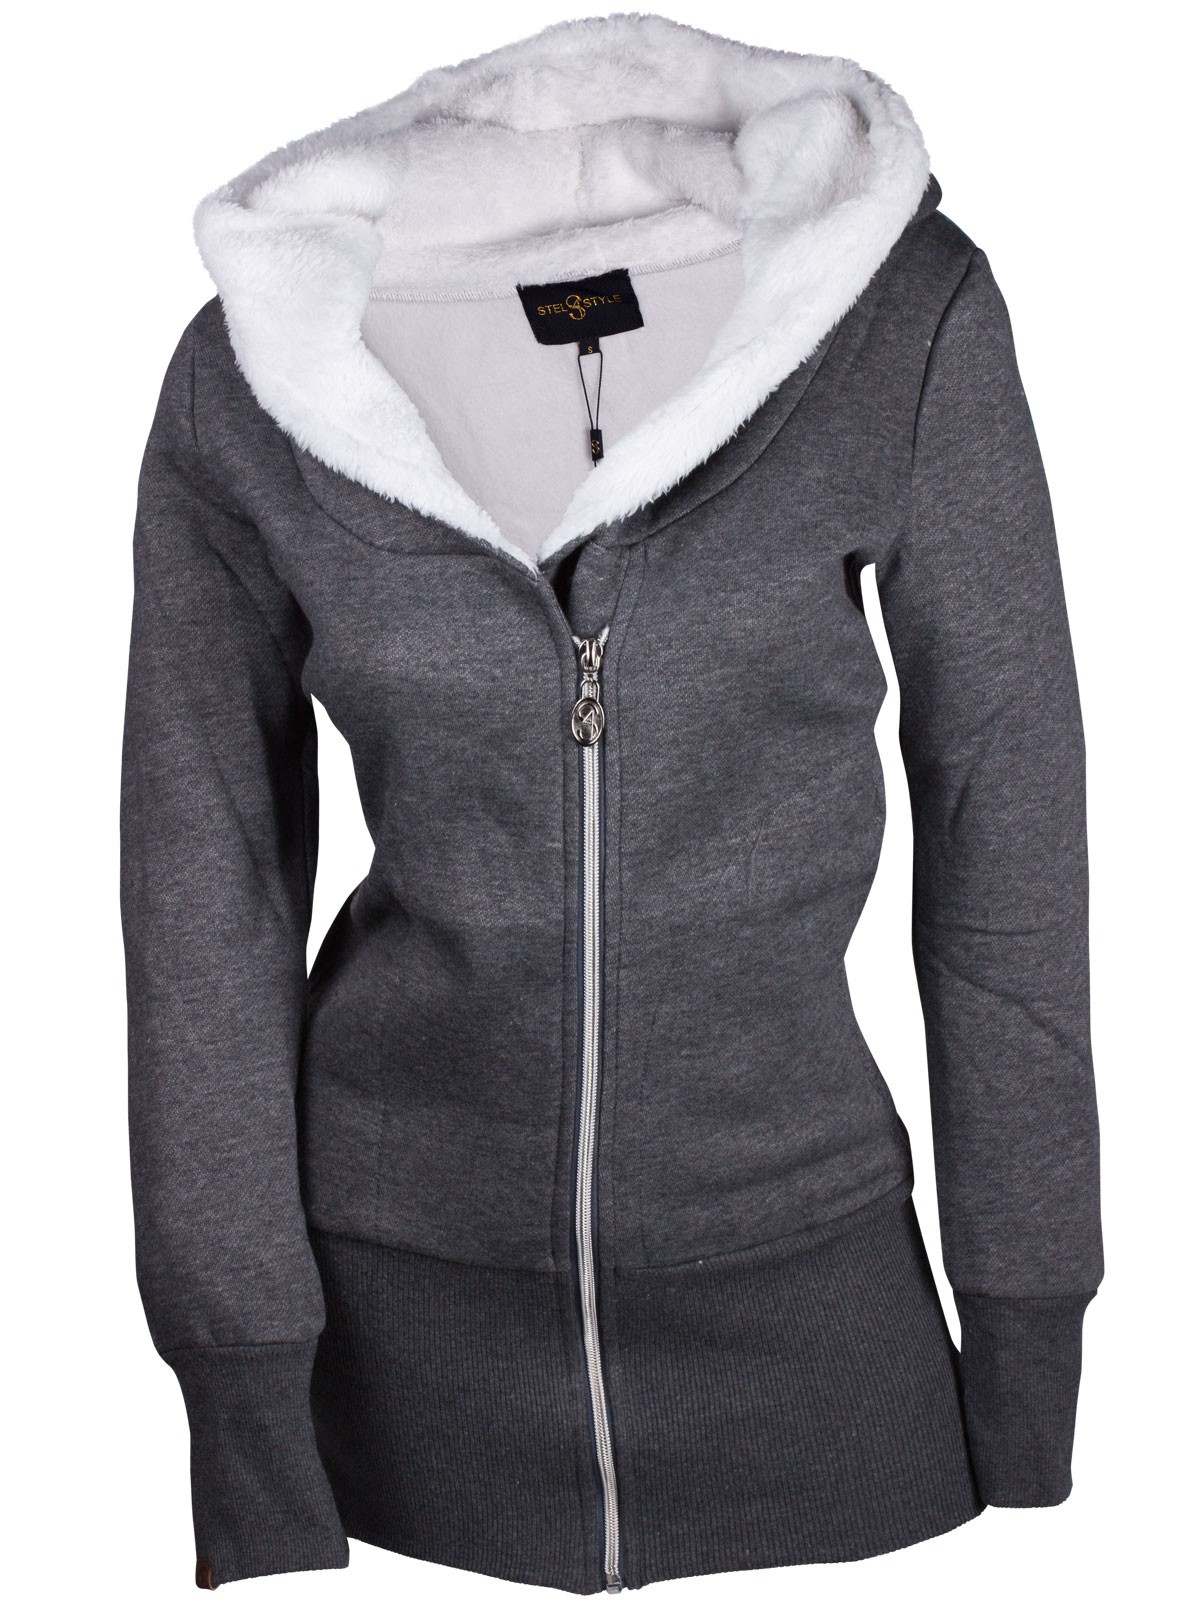 damen hoodie kapuzenpullover kapuze sweater jacke pulli. Black Bedroom Furniture Sets. Home Design Ideas